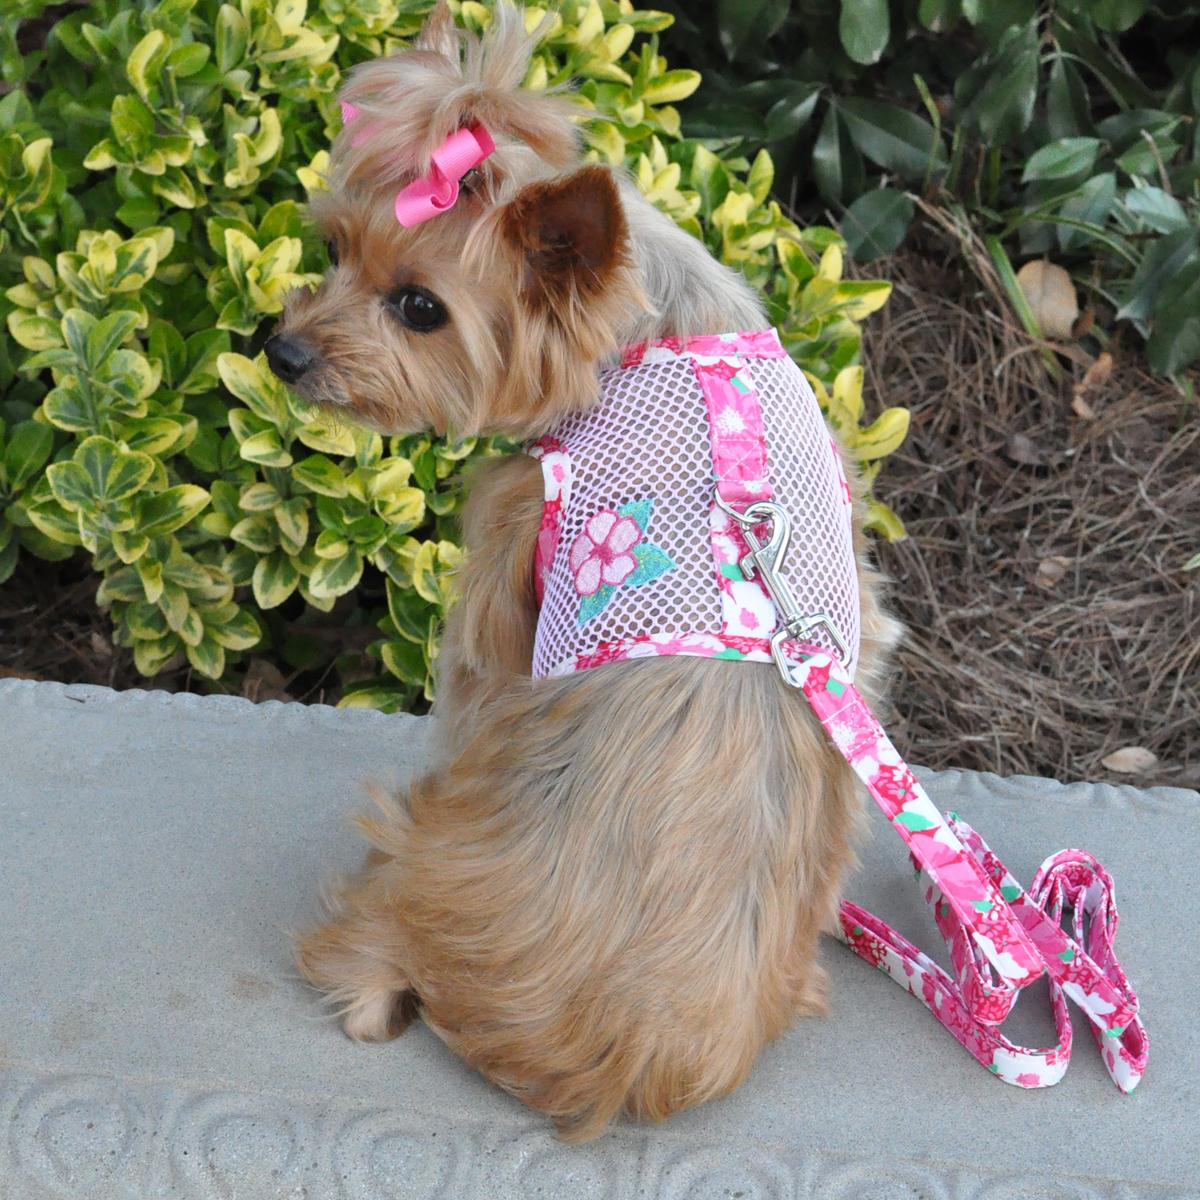 Cool Mesh Dog Harness by Doggie Design - Hawaiian Hibiscus Pink